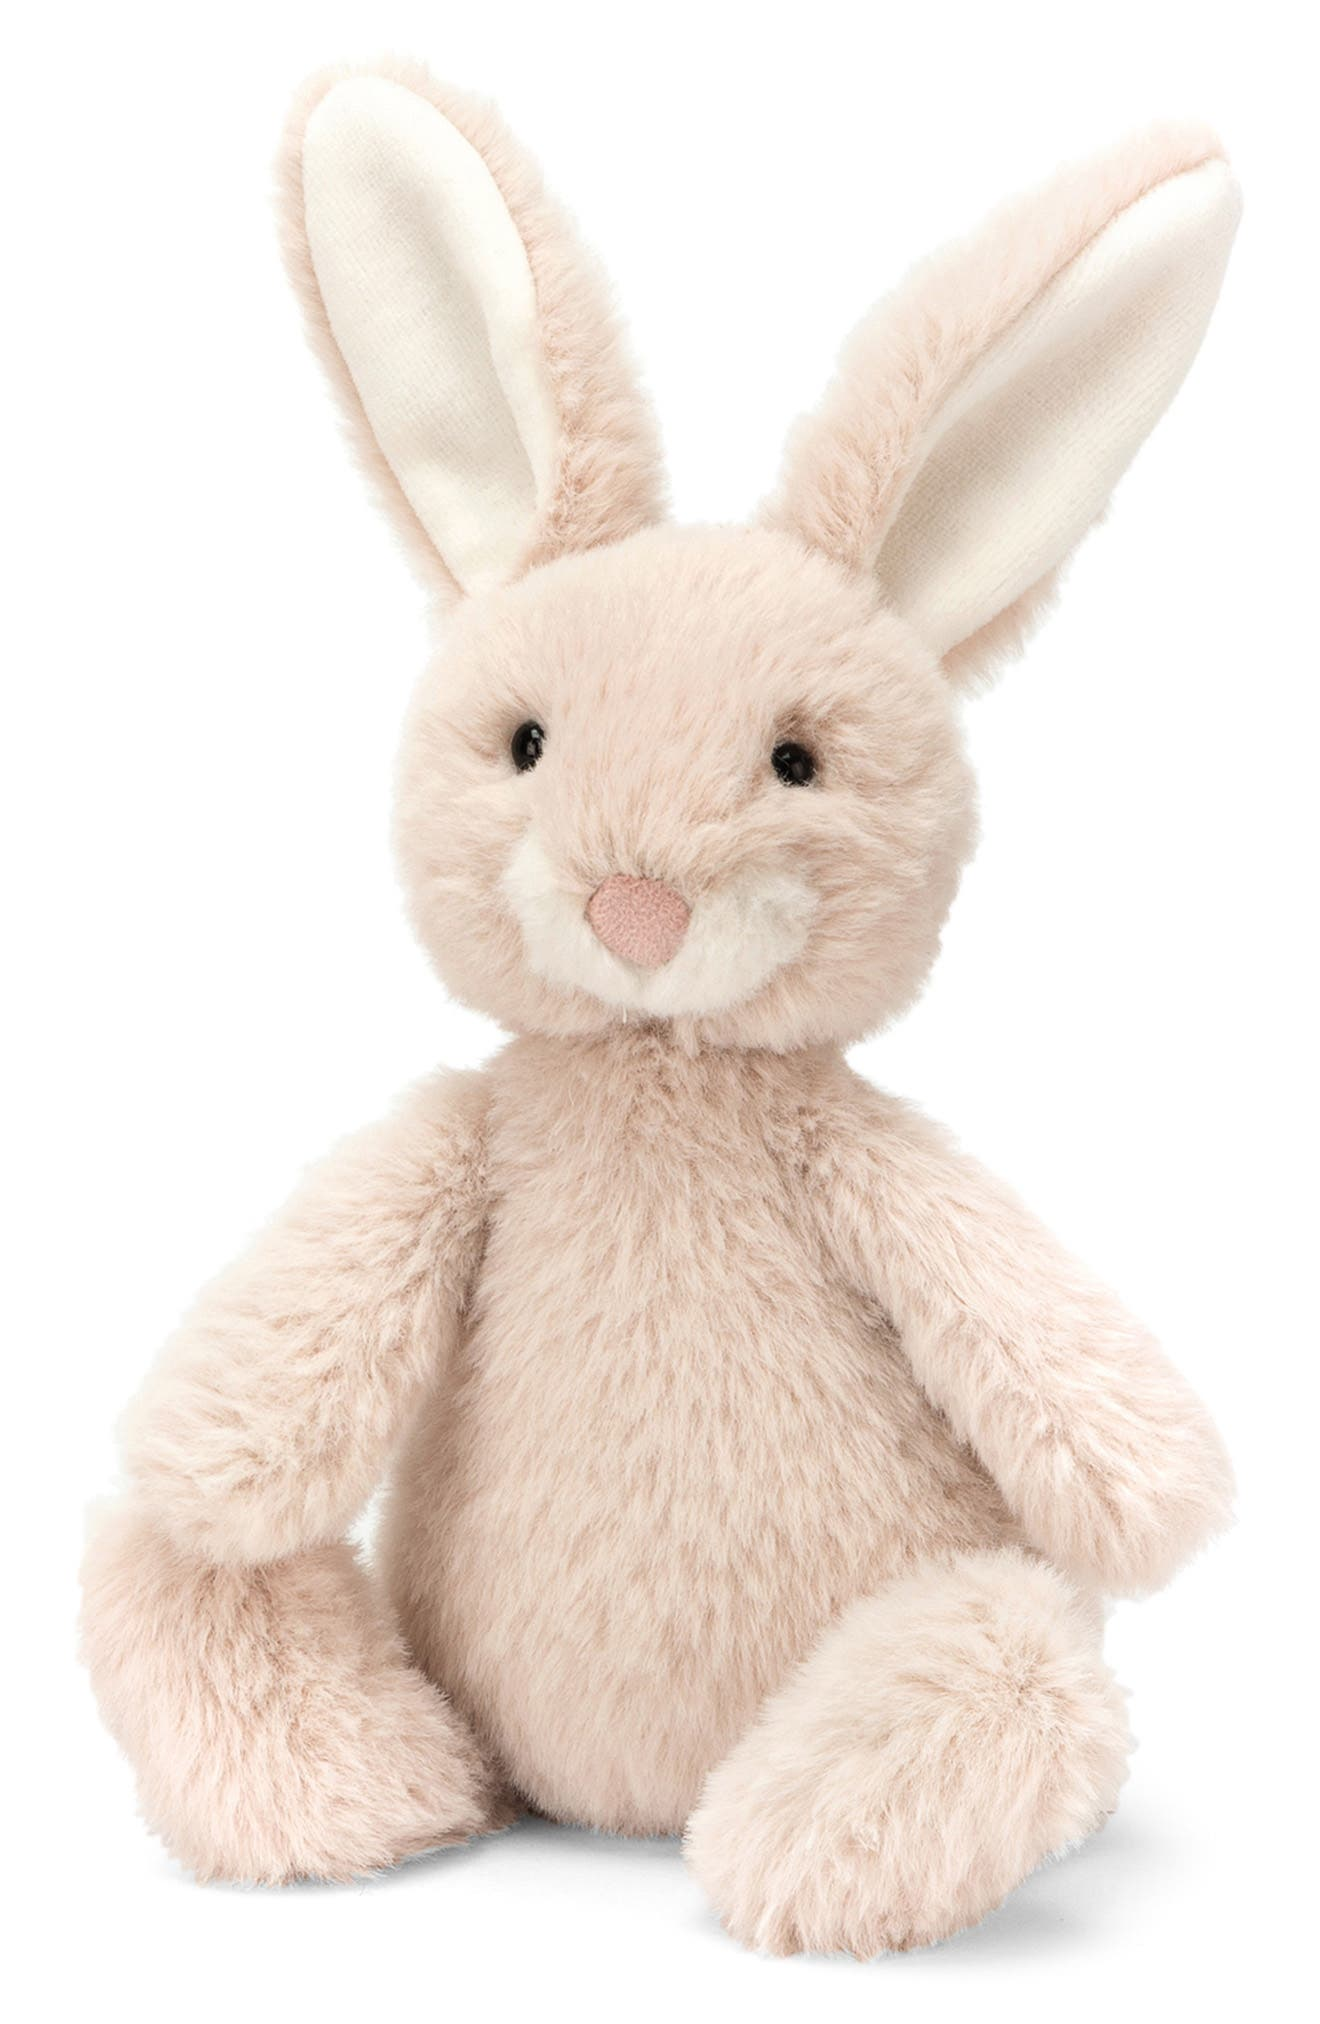 Large Nibble Bunny Stuffed Animal by Jellycat